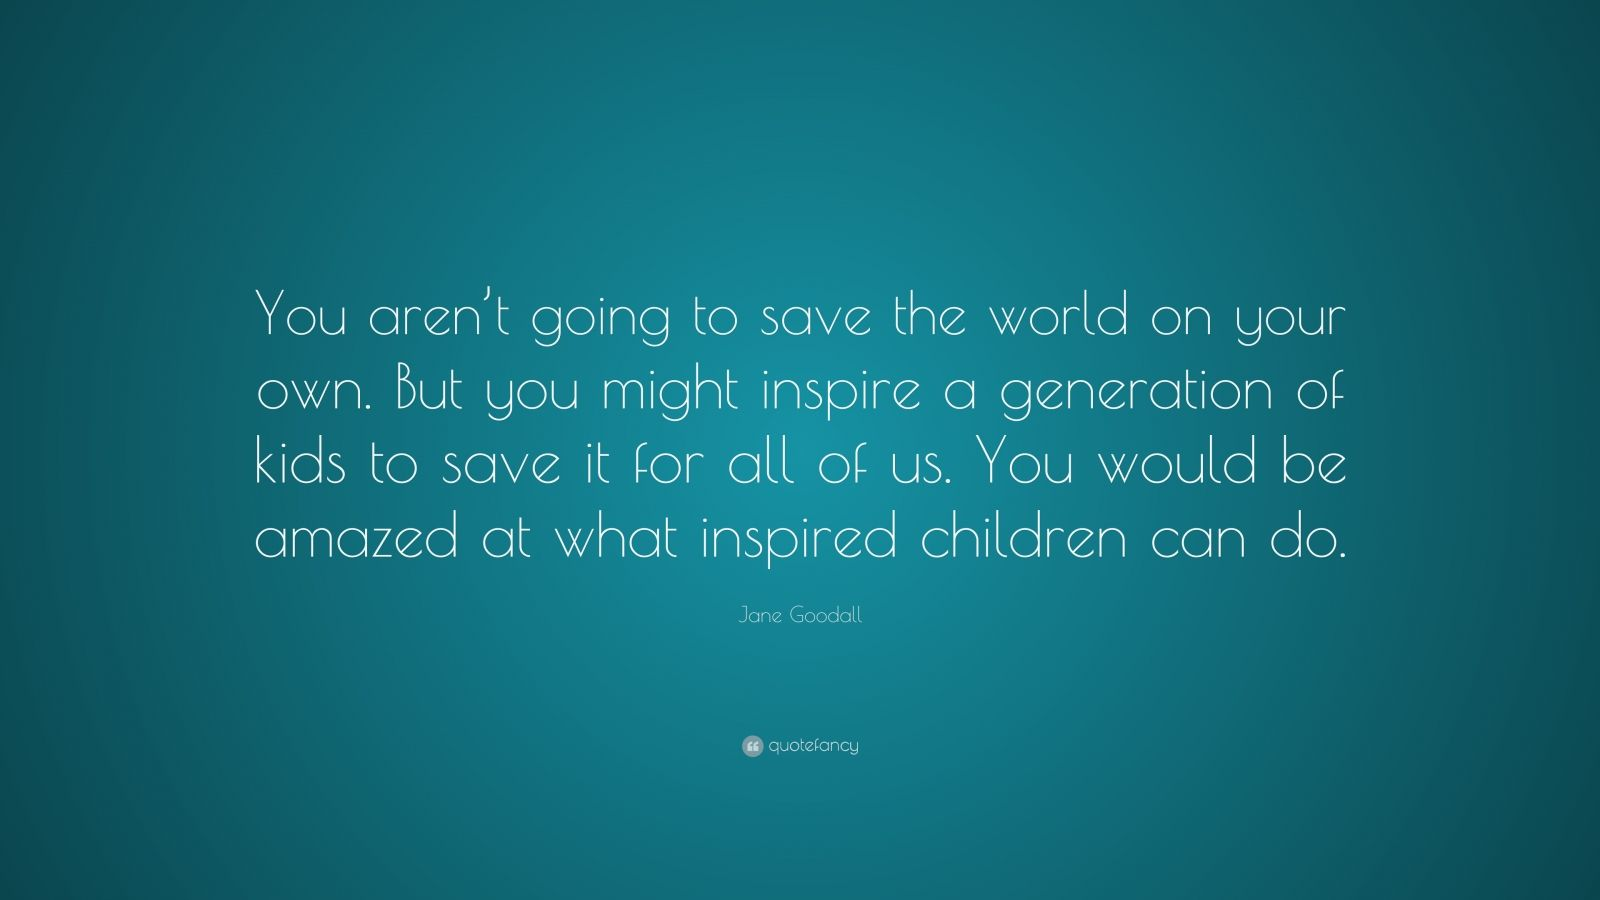 """Jane Goodall Quote: """"You aren't going to save the world on your own. But you might inspire a generation of kids to save it for all of us. You would be amazed at what inspired children can do."""""""